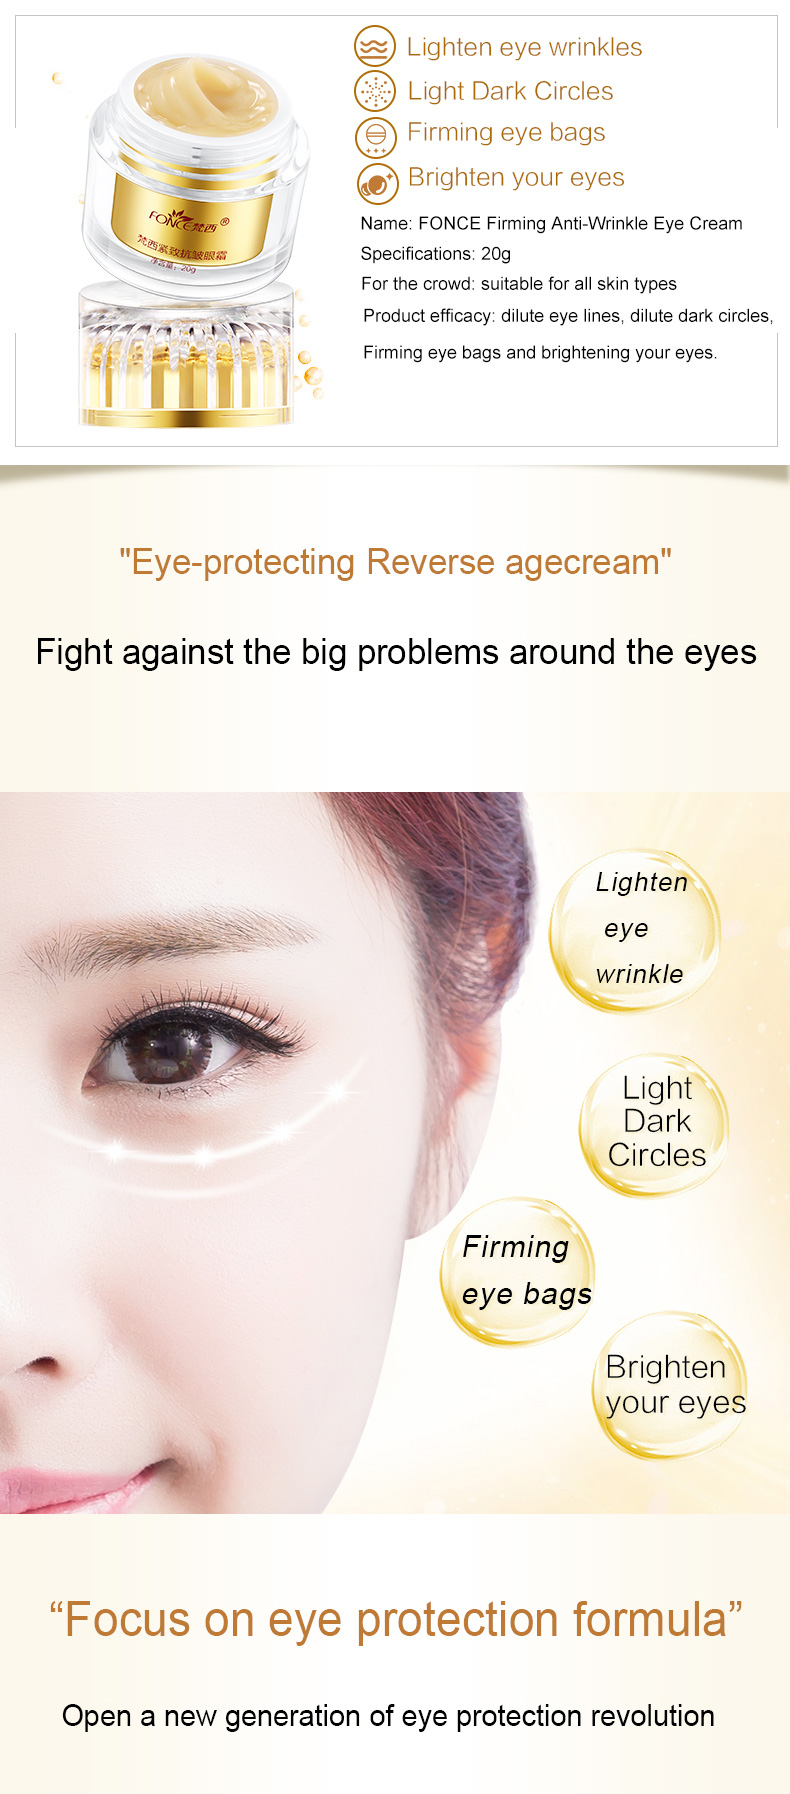 Korea-Skin-Care-Remove-Dark-Circles-Eye-Cream-Treatment-Eye-Bag-Moisturizing-Firming-Serum-Day-Night-Cream-eye-mask-patch-20g_03